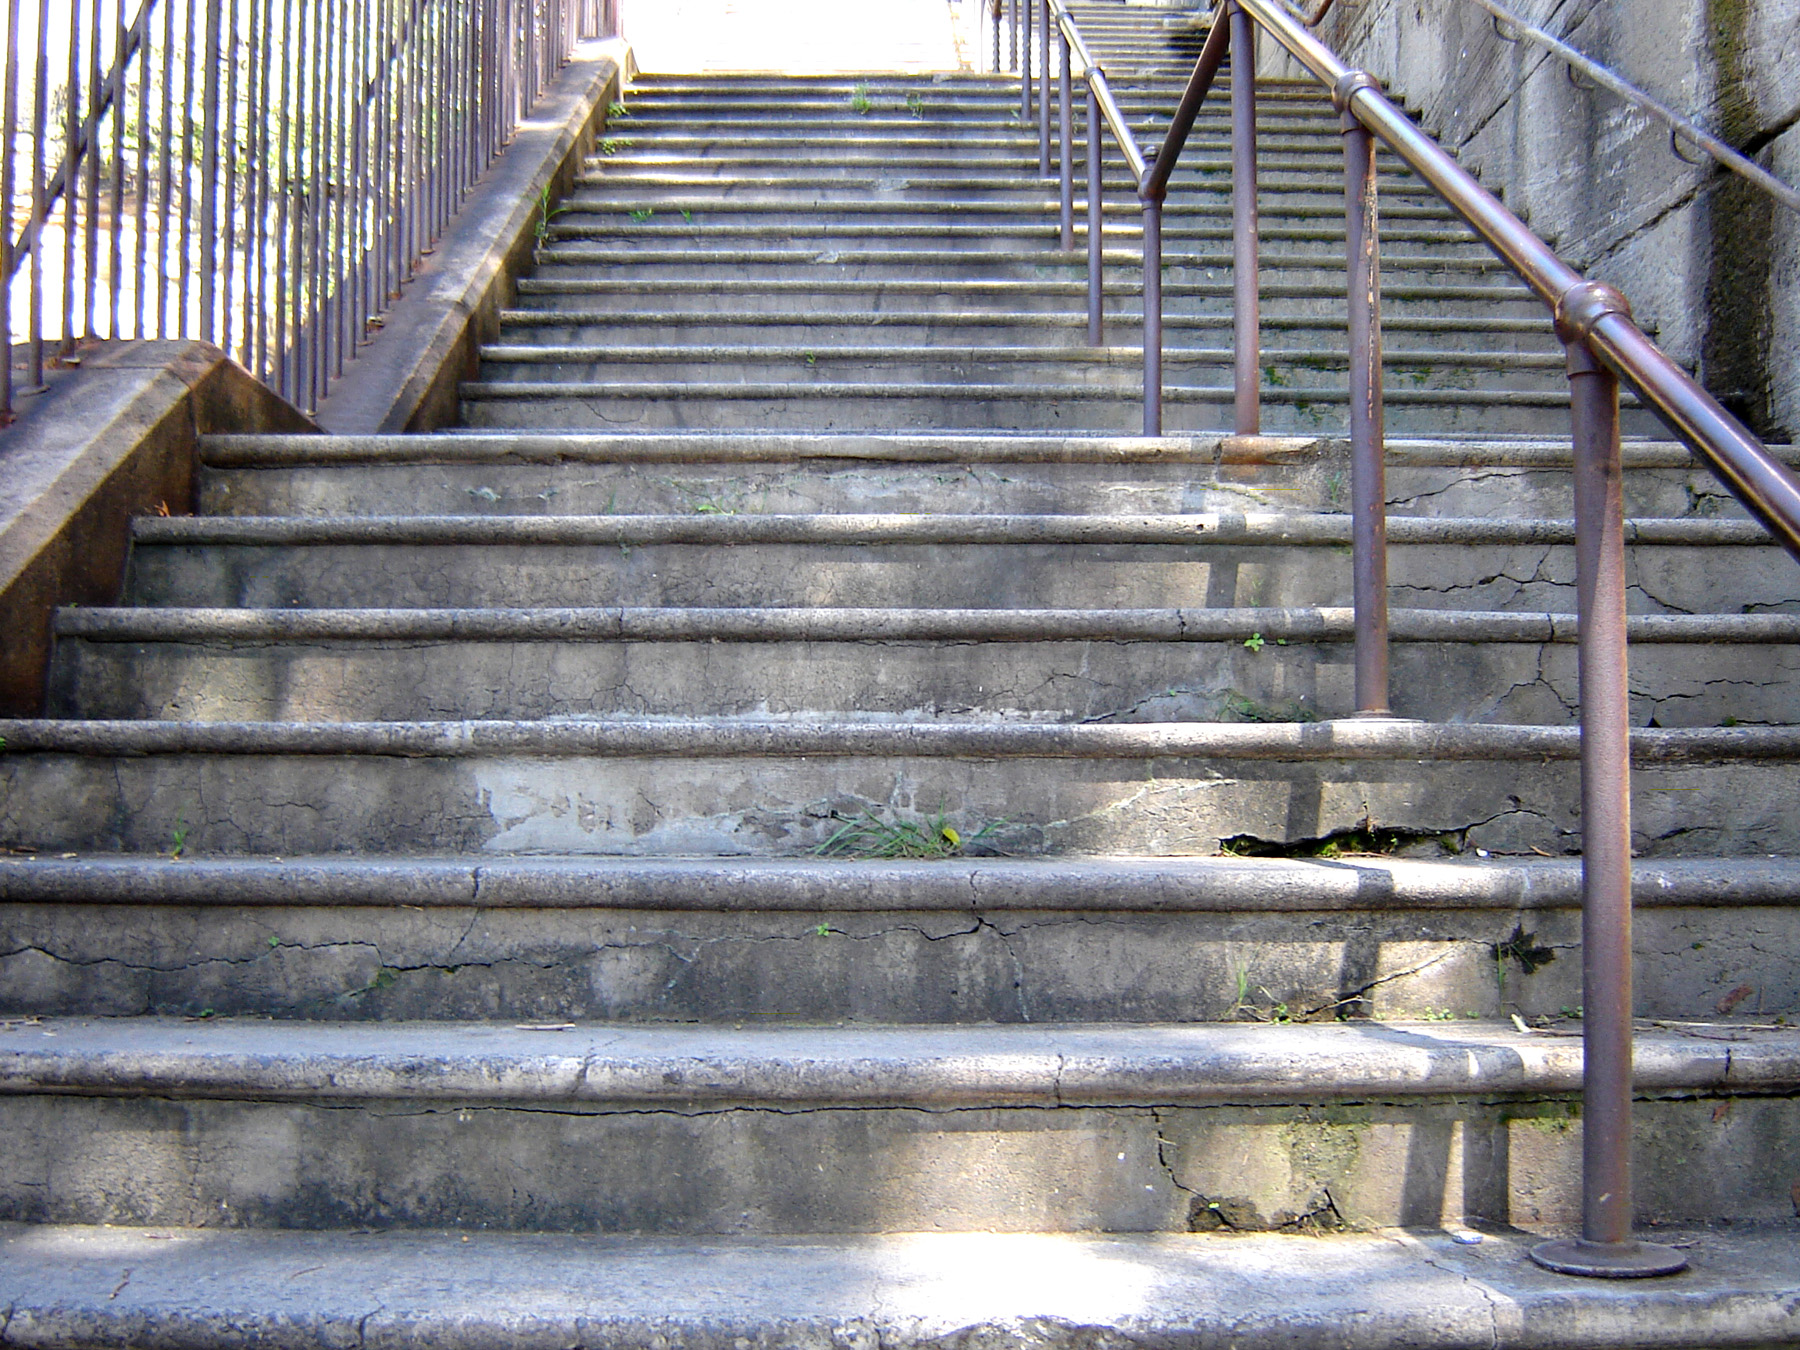 Stairs, Below, Concrete, Outside, Steps, HQ Photo